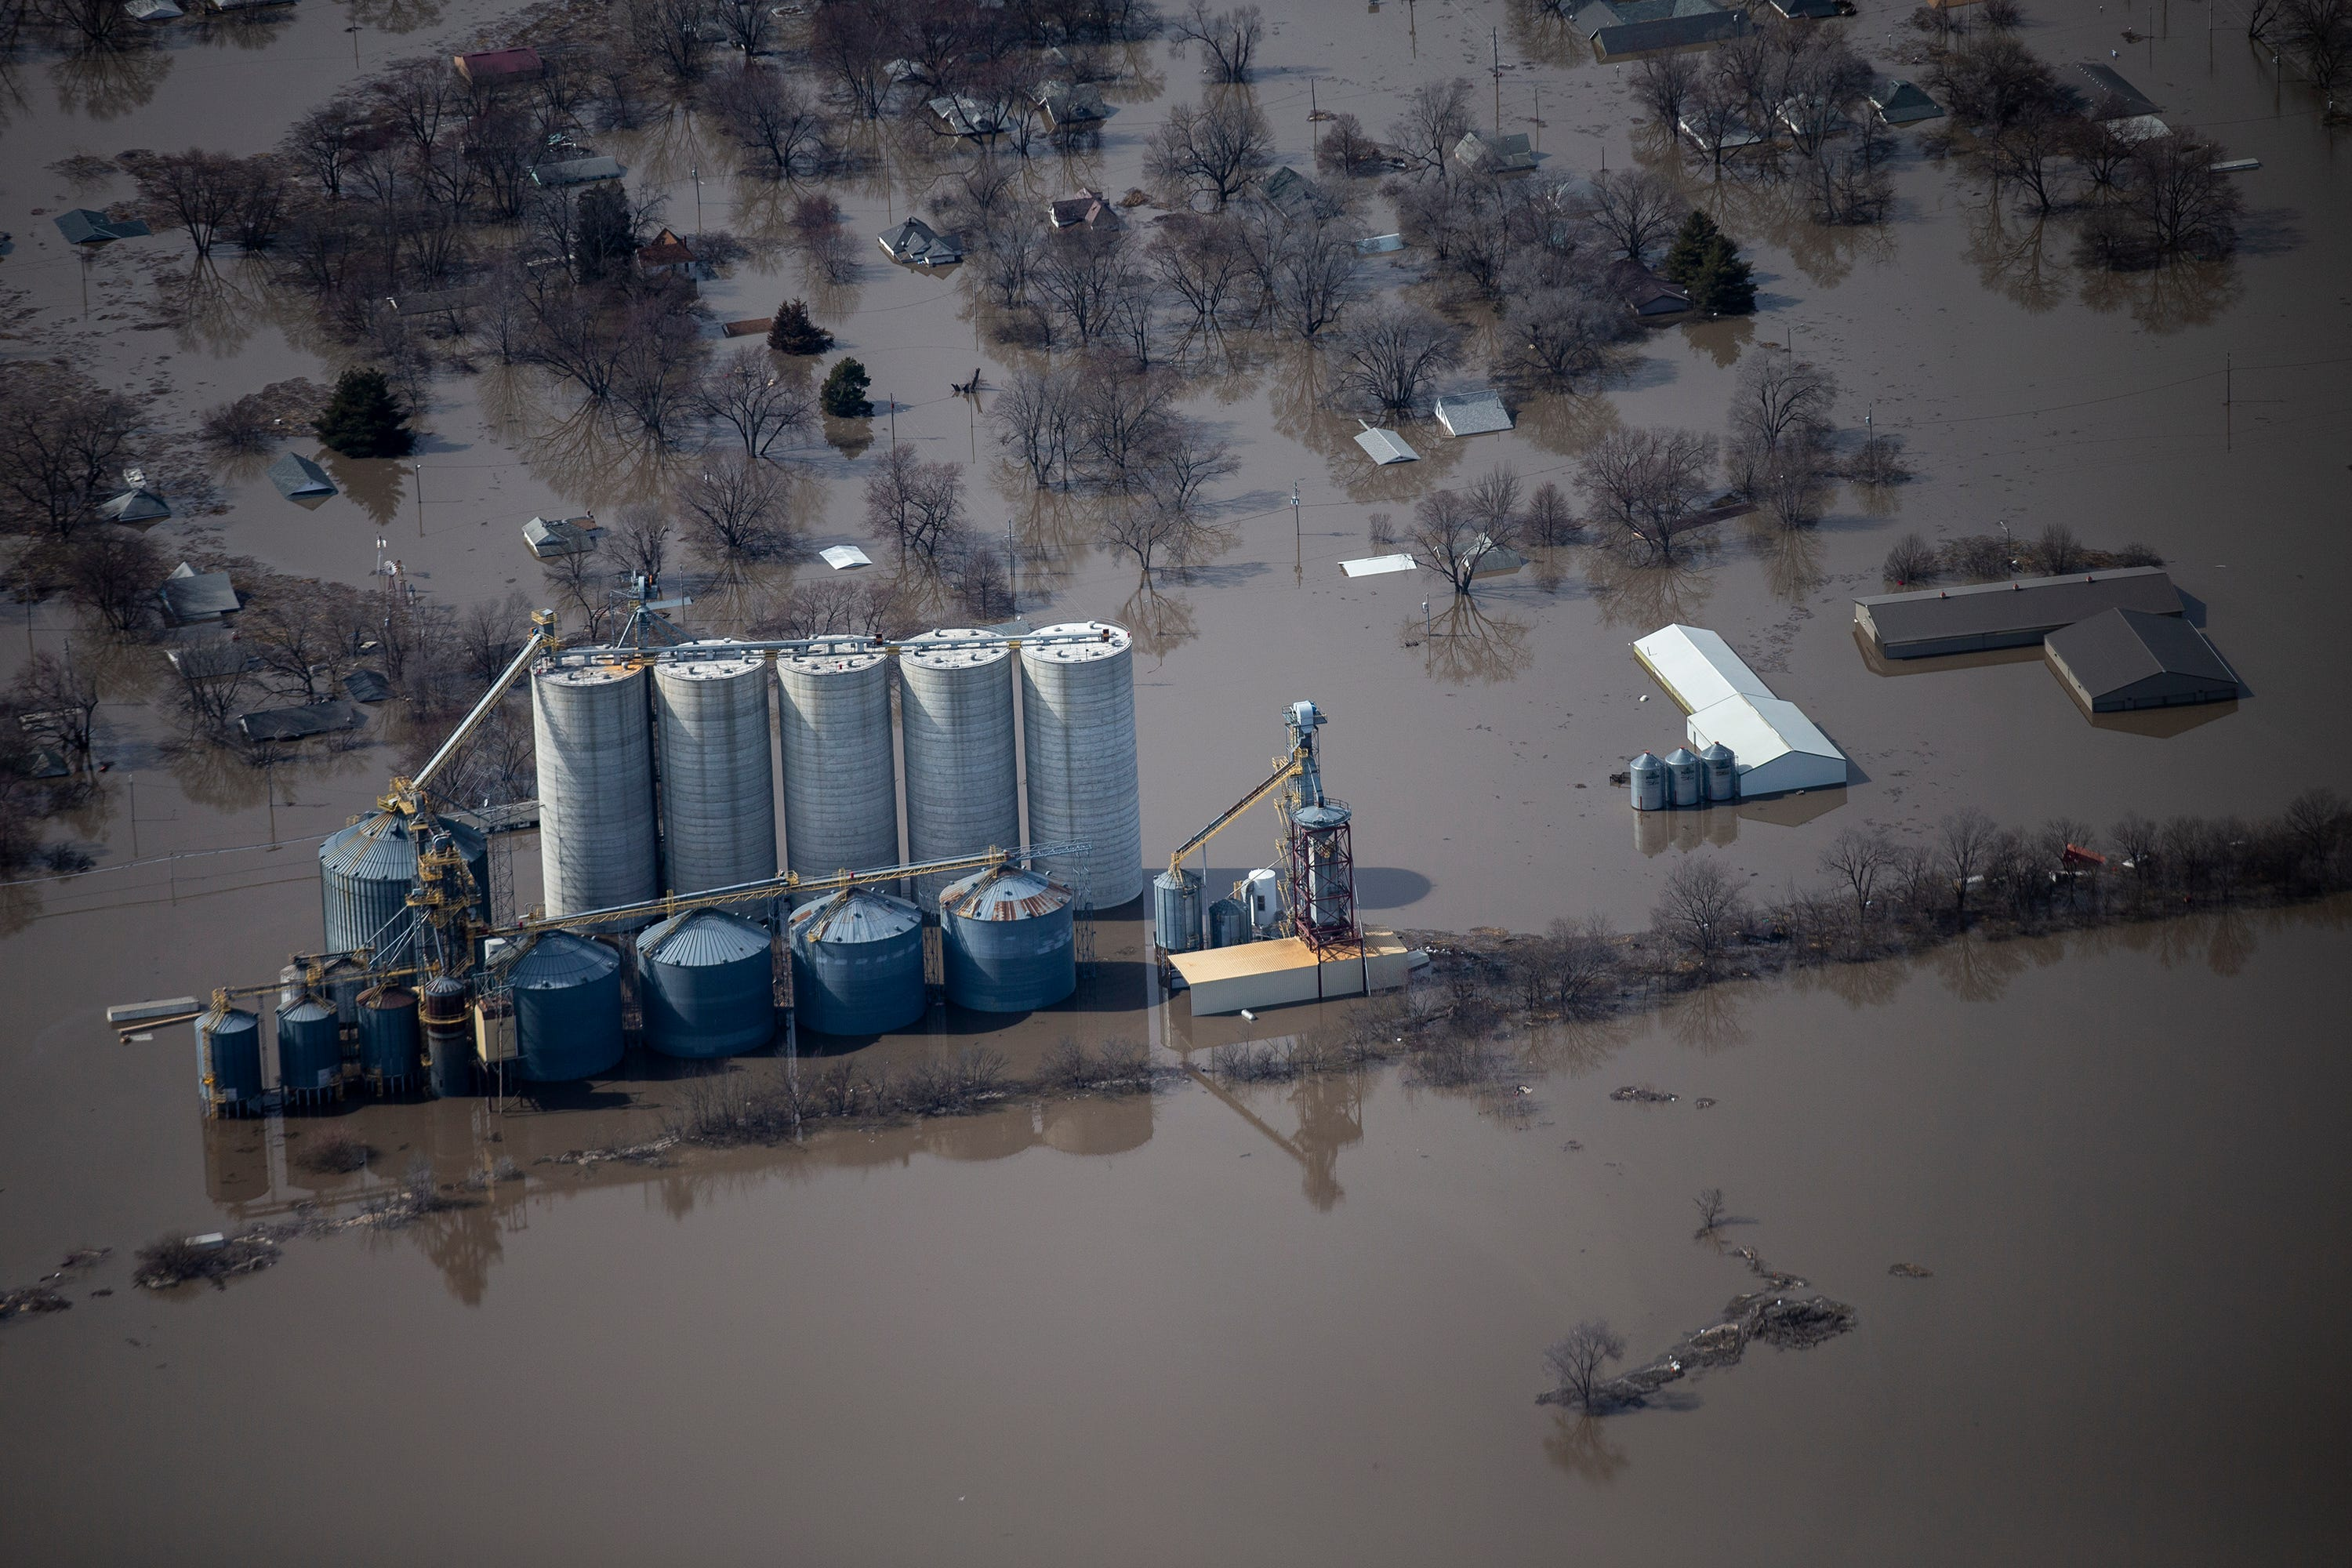 desmoinesregister.com - Brian Powers and Chelsey Lewis, Des Moines Register - Live drone video of flooding along the Missouri River